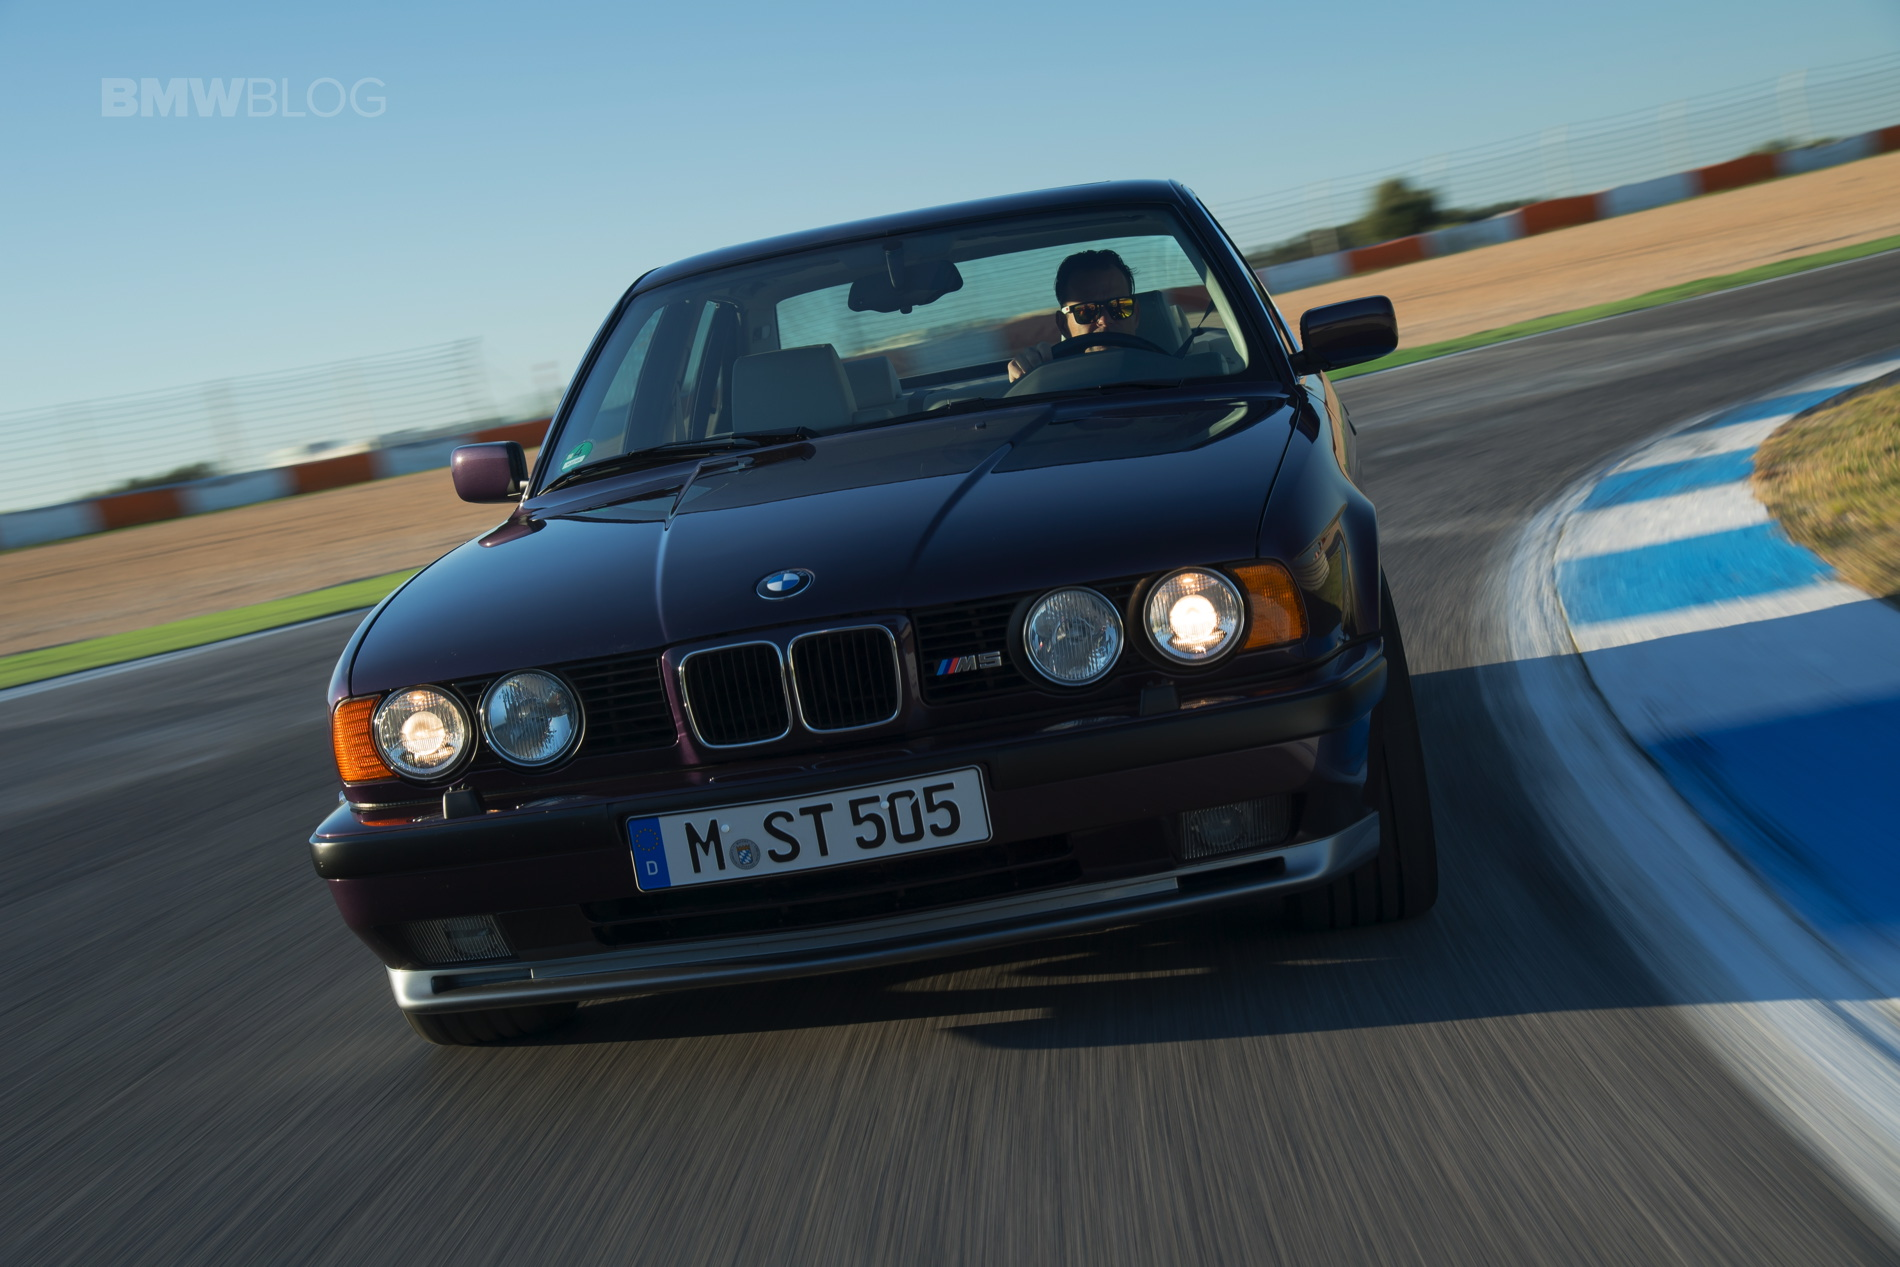 BMW E34 M5 photos 03